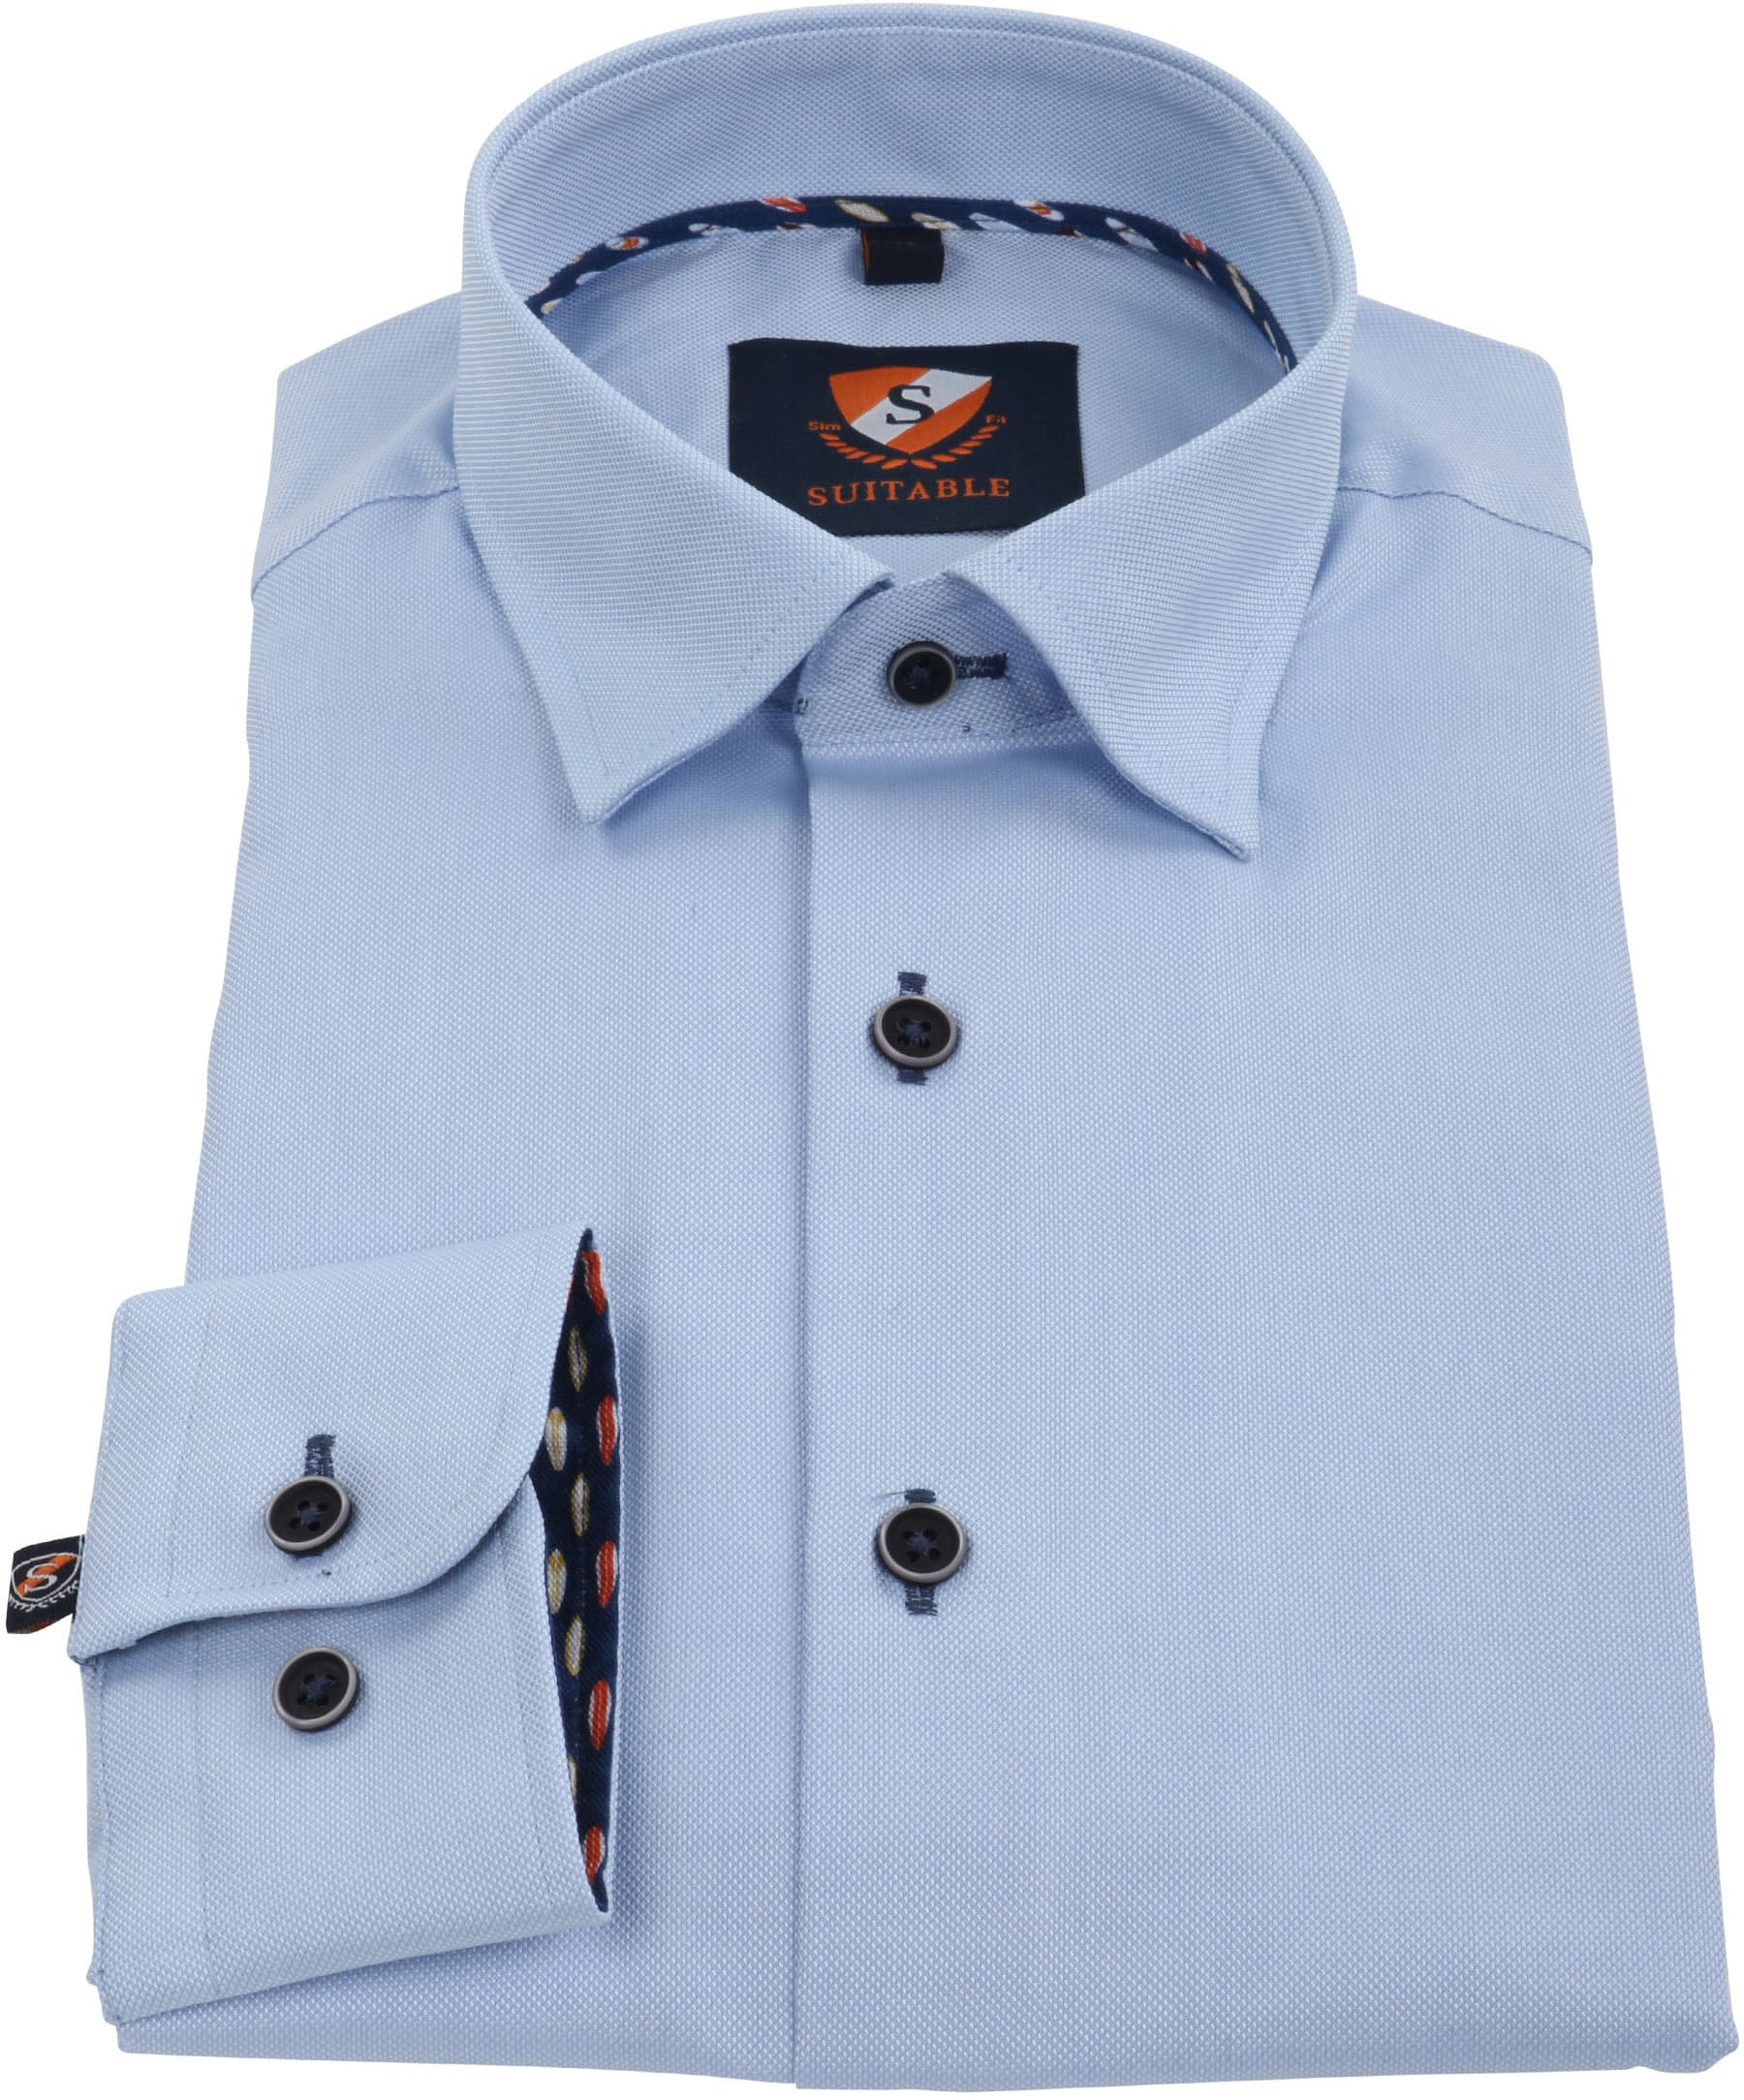 Suitable Overhemd Oxford Blauw SF foto 2